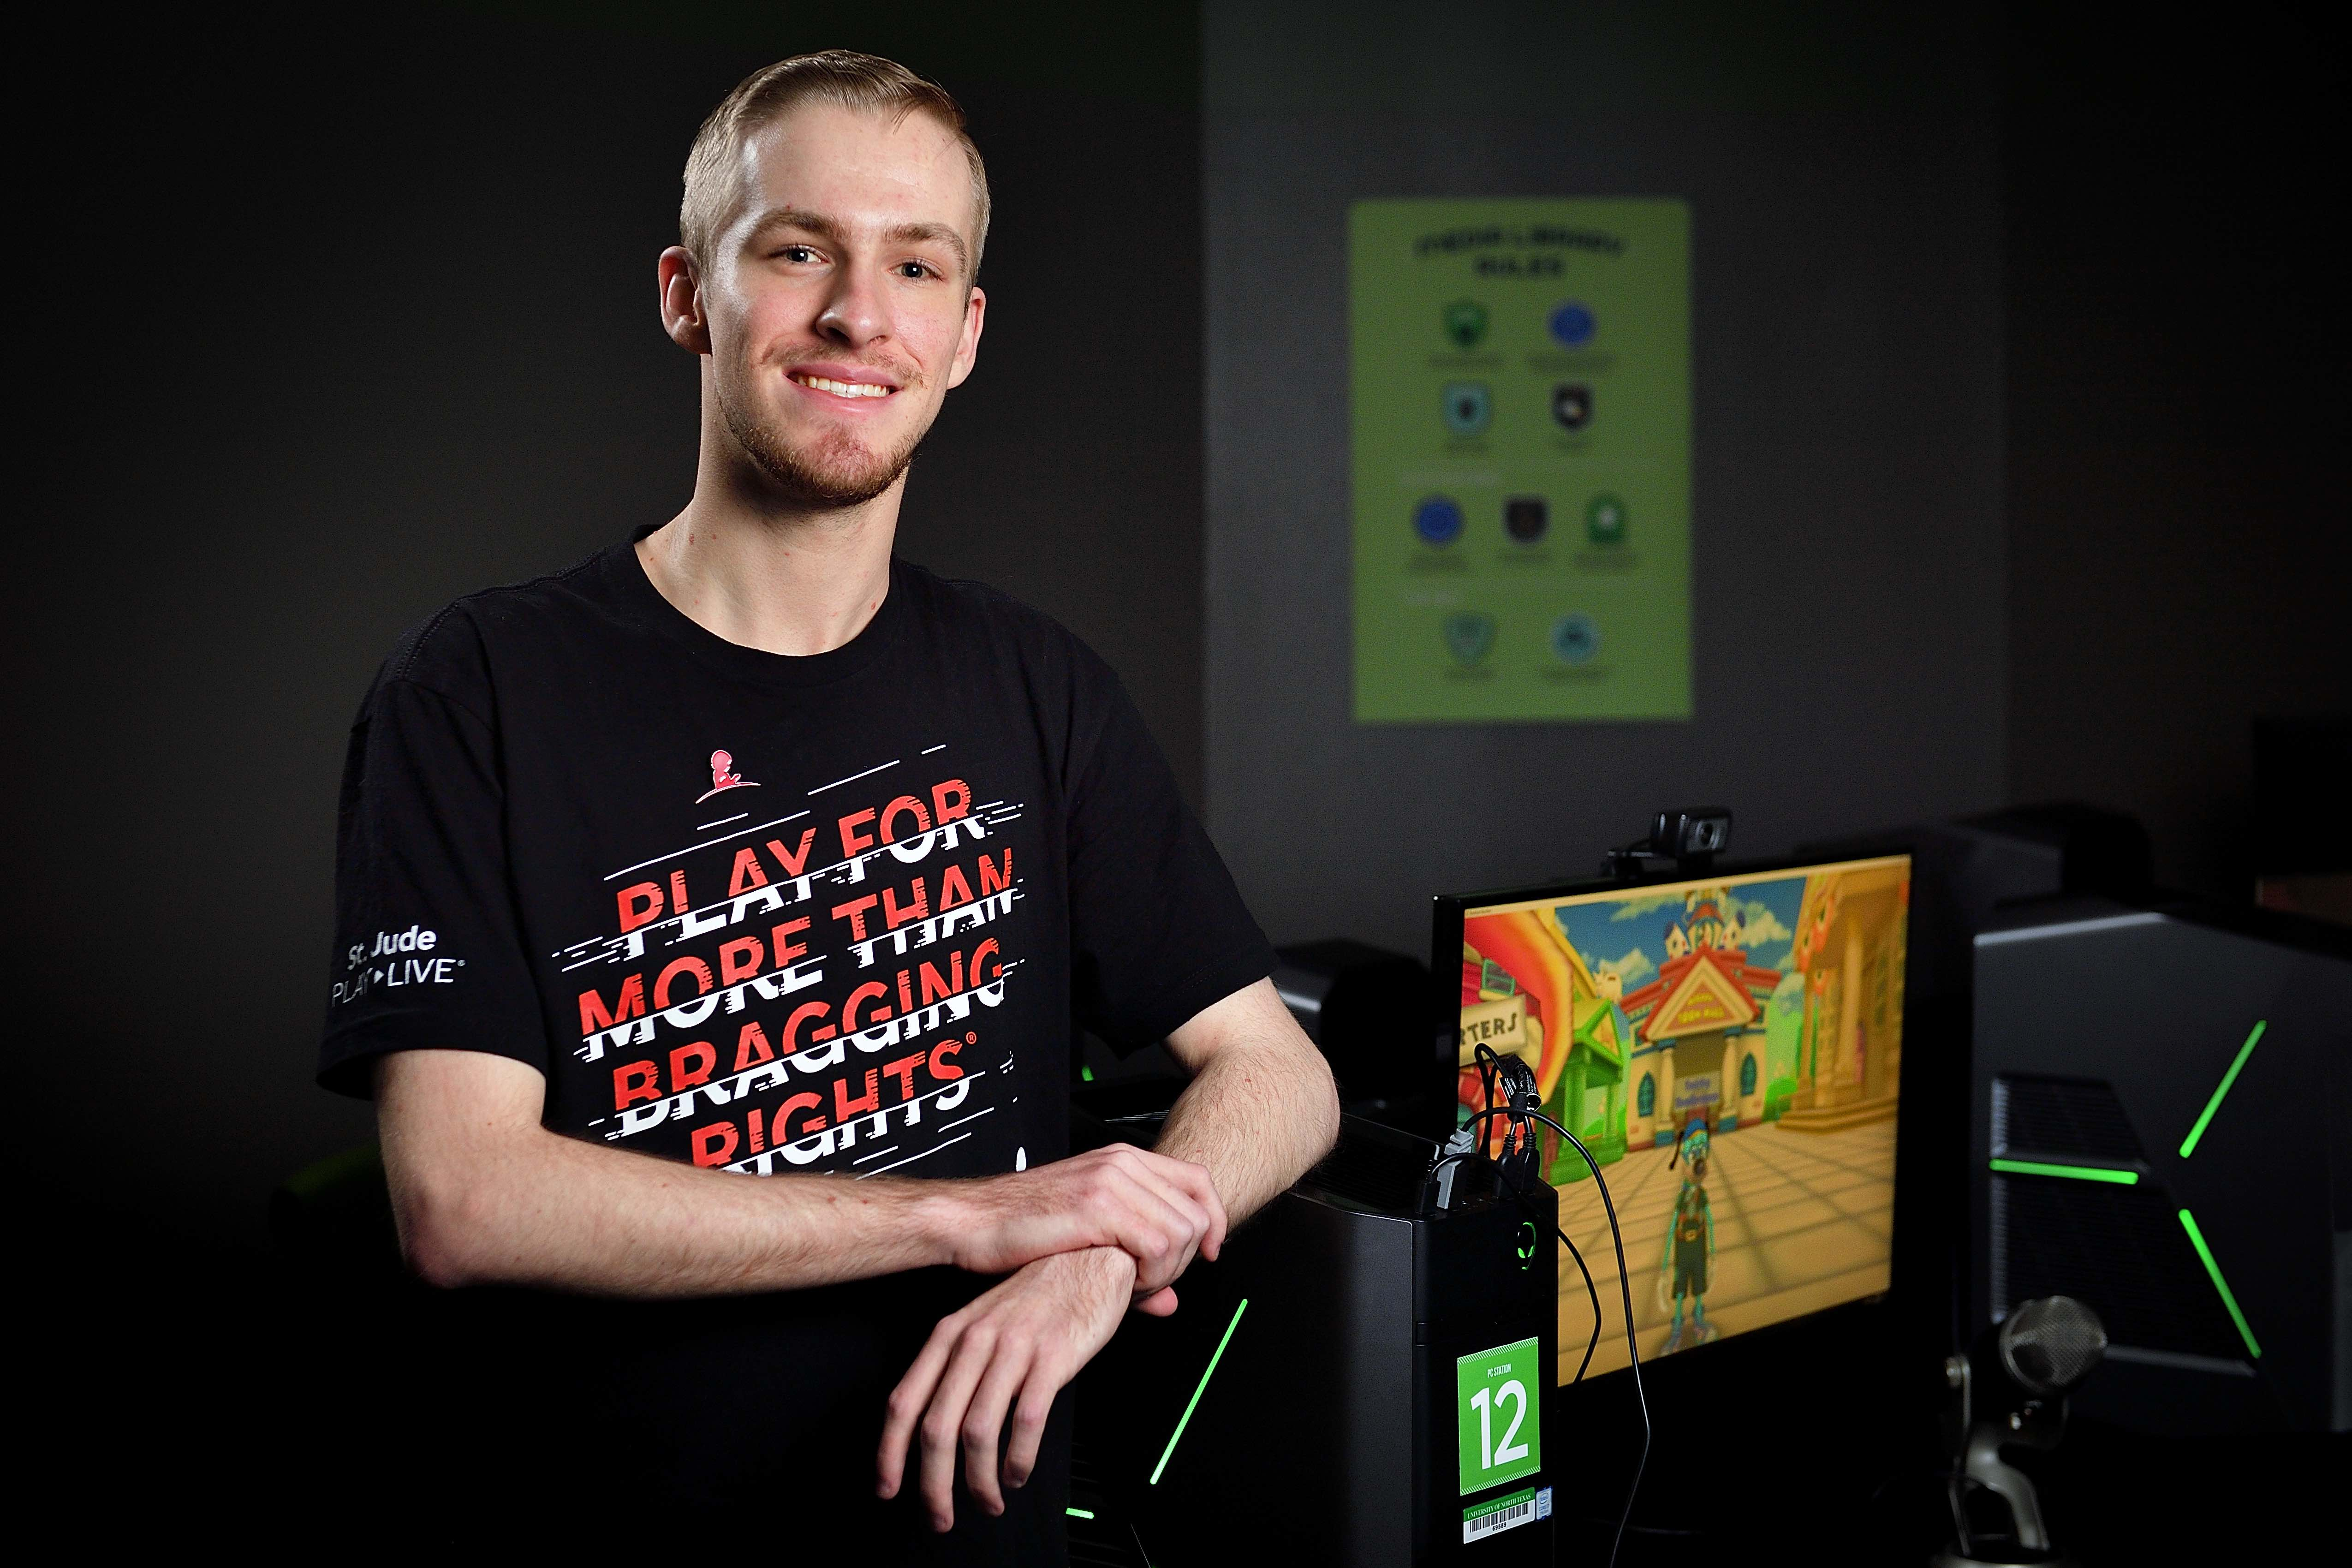 Video gaming for charity